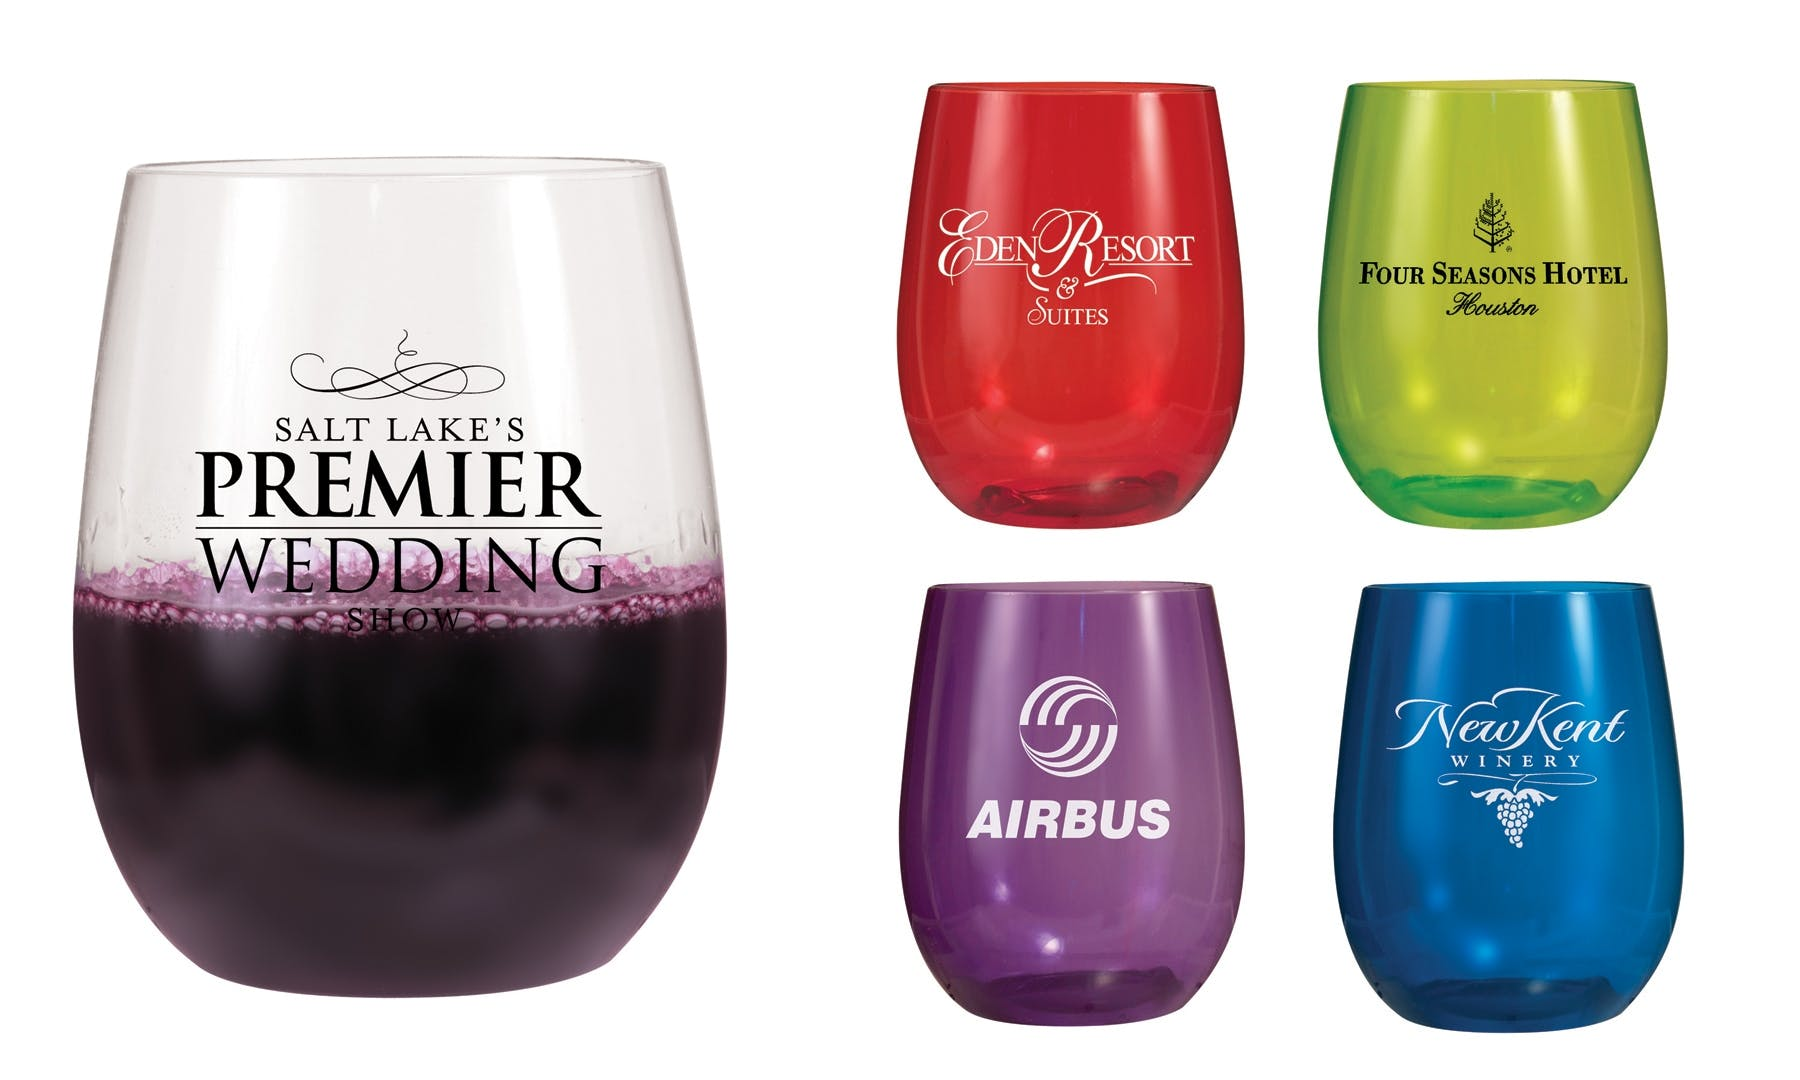 12 Oz. Stemless Wine Glass (Item # ZEEKT-JADJW) Wine glass sold by InkEasy